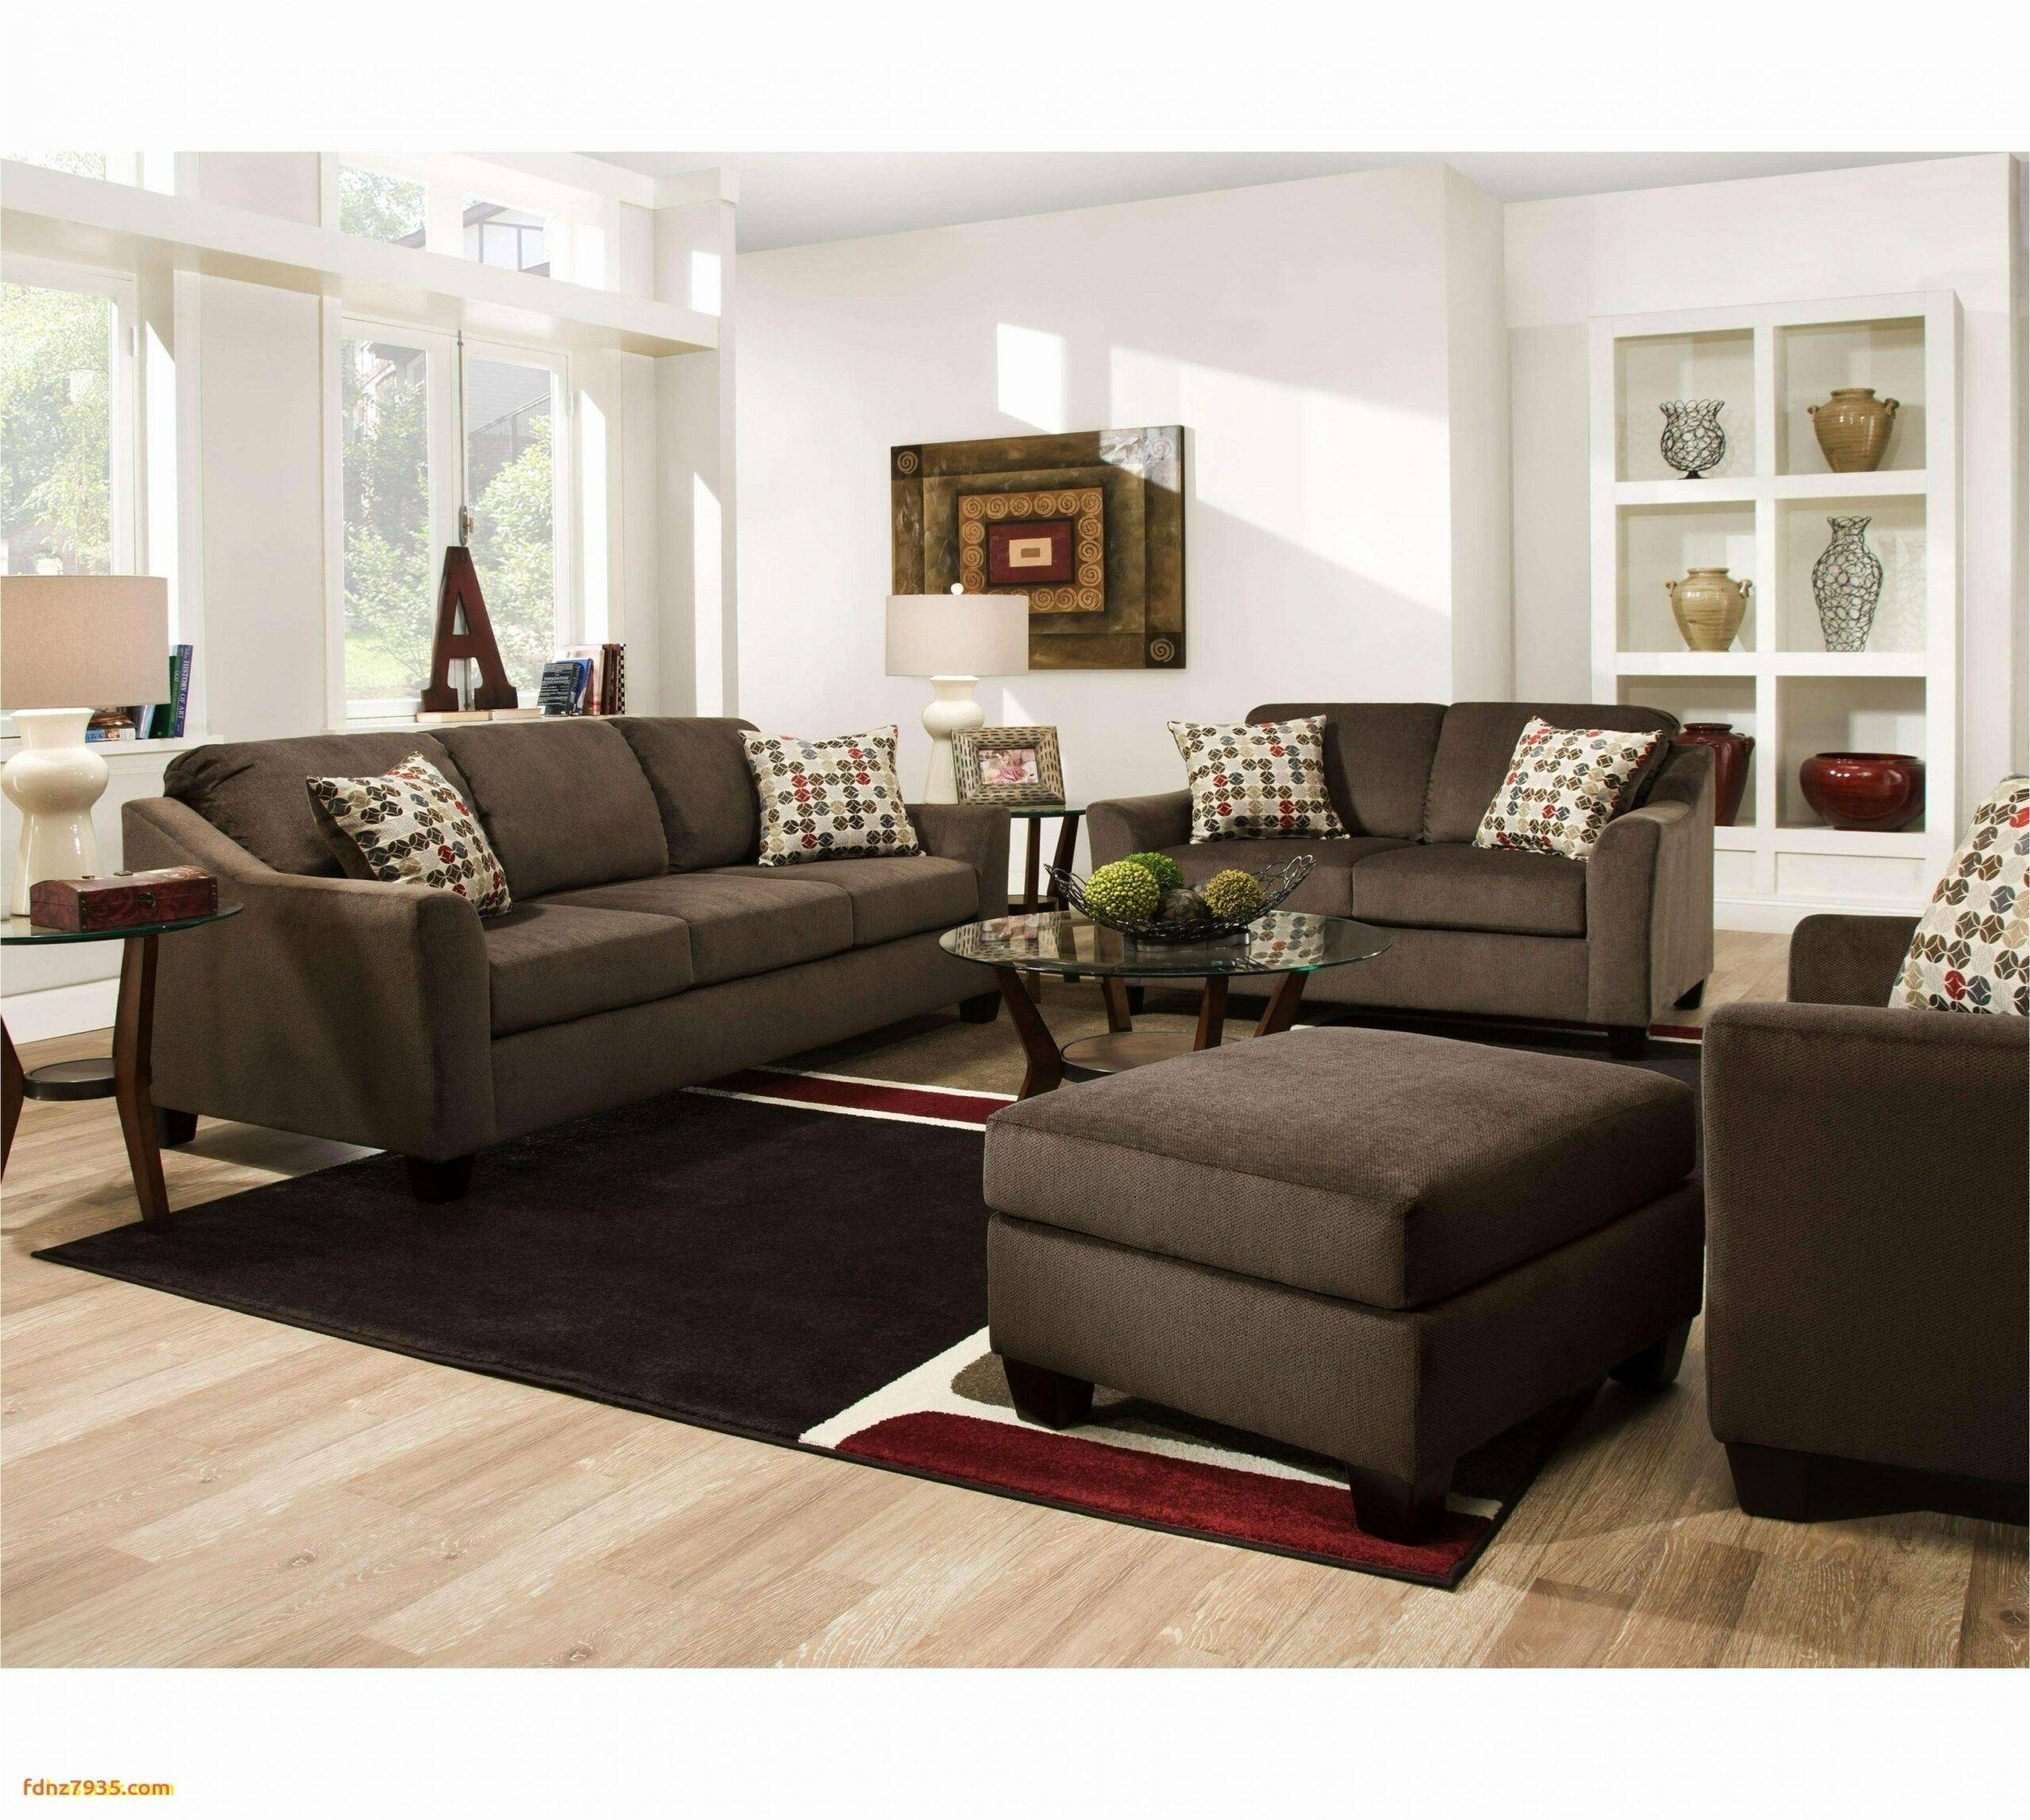 living room ideas leather living room furniture fresh sofa design of living room ideas scaled